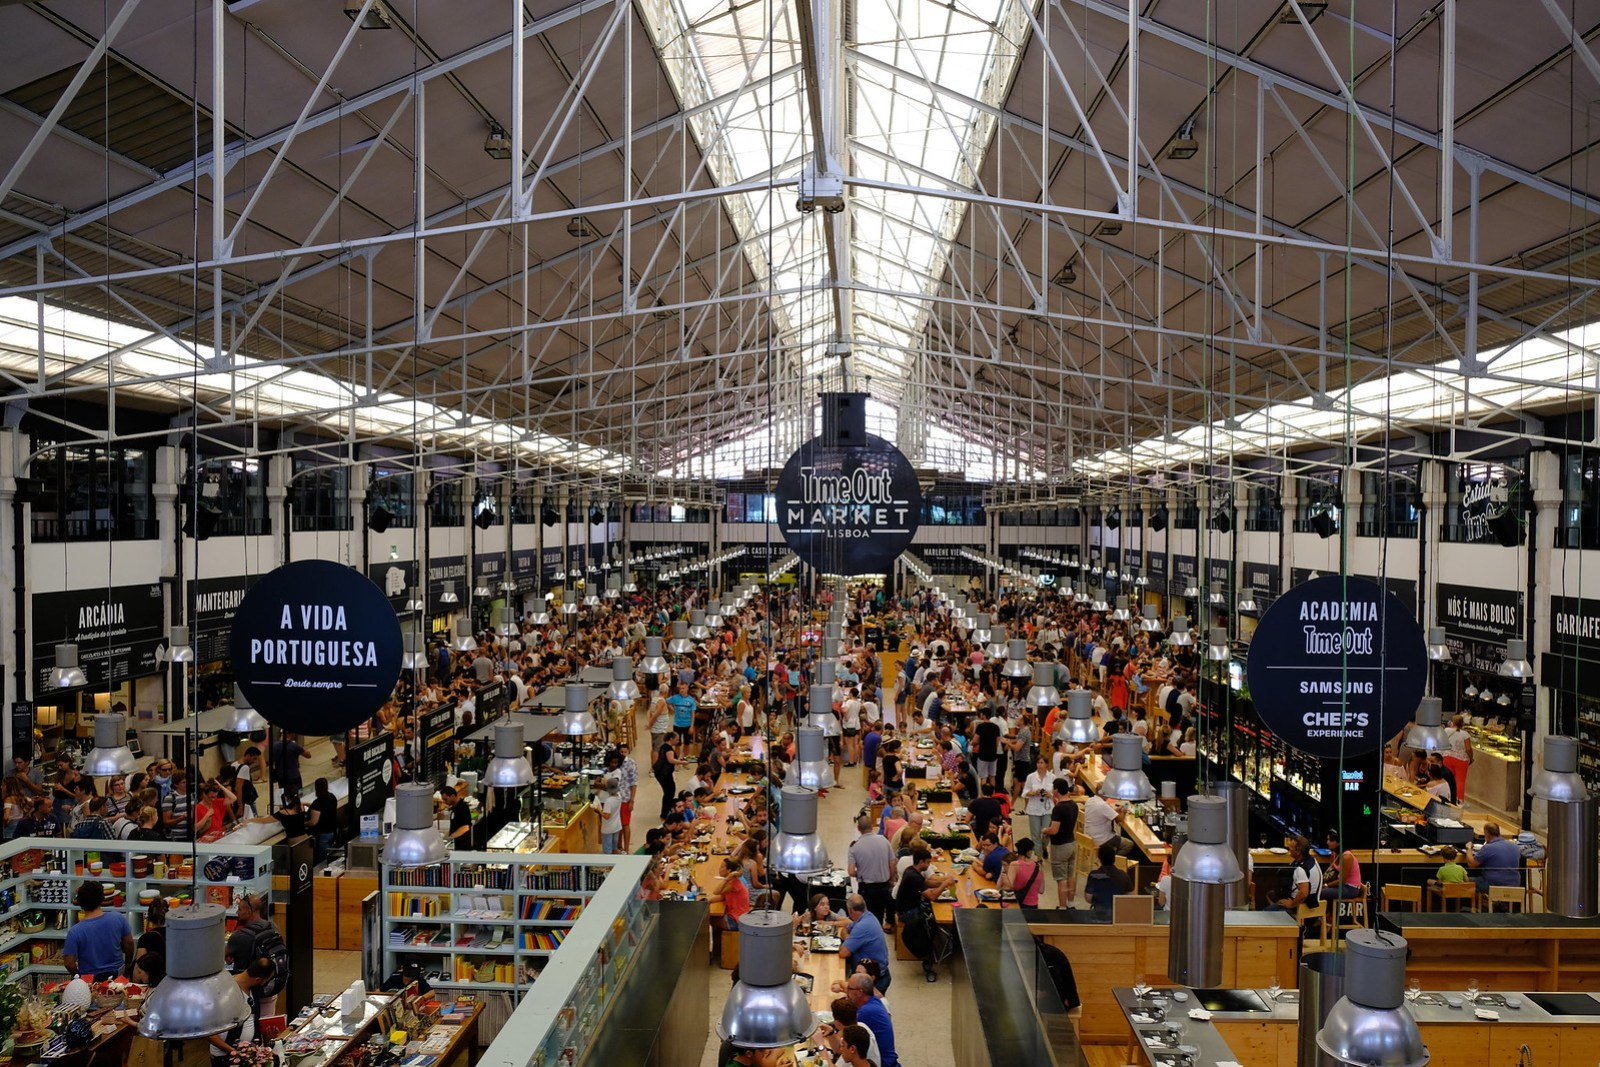 Time Out Market Interior   One Day in Lisbon